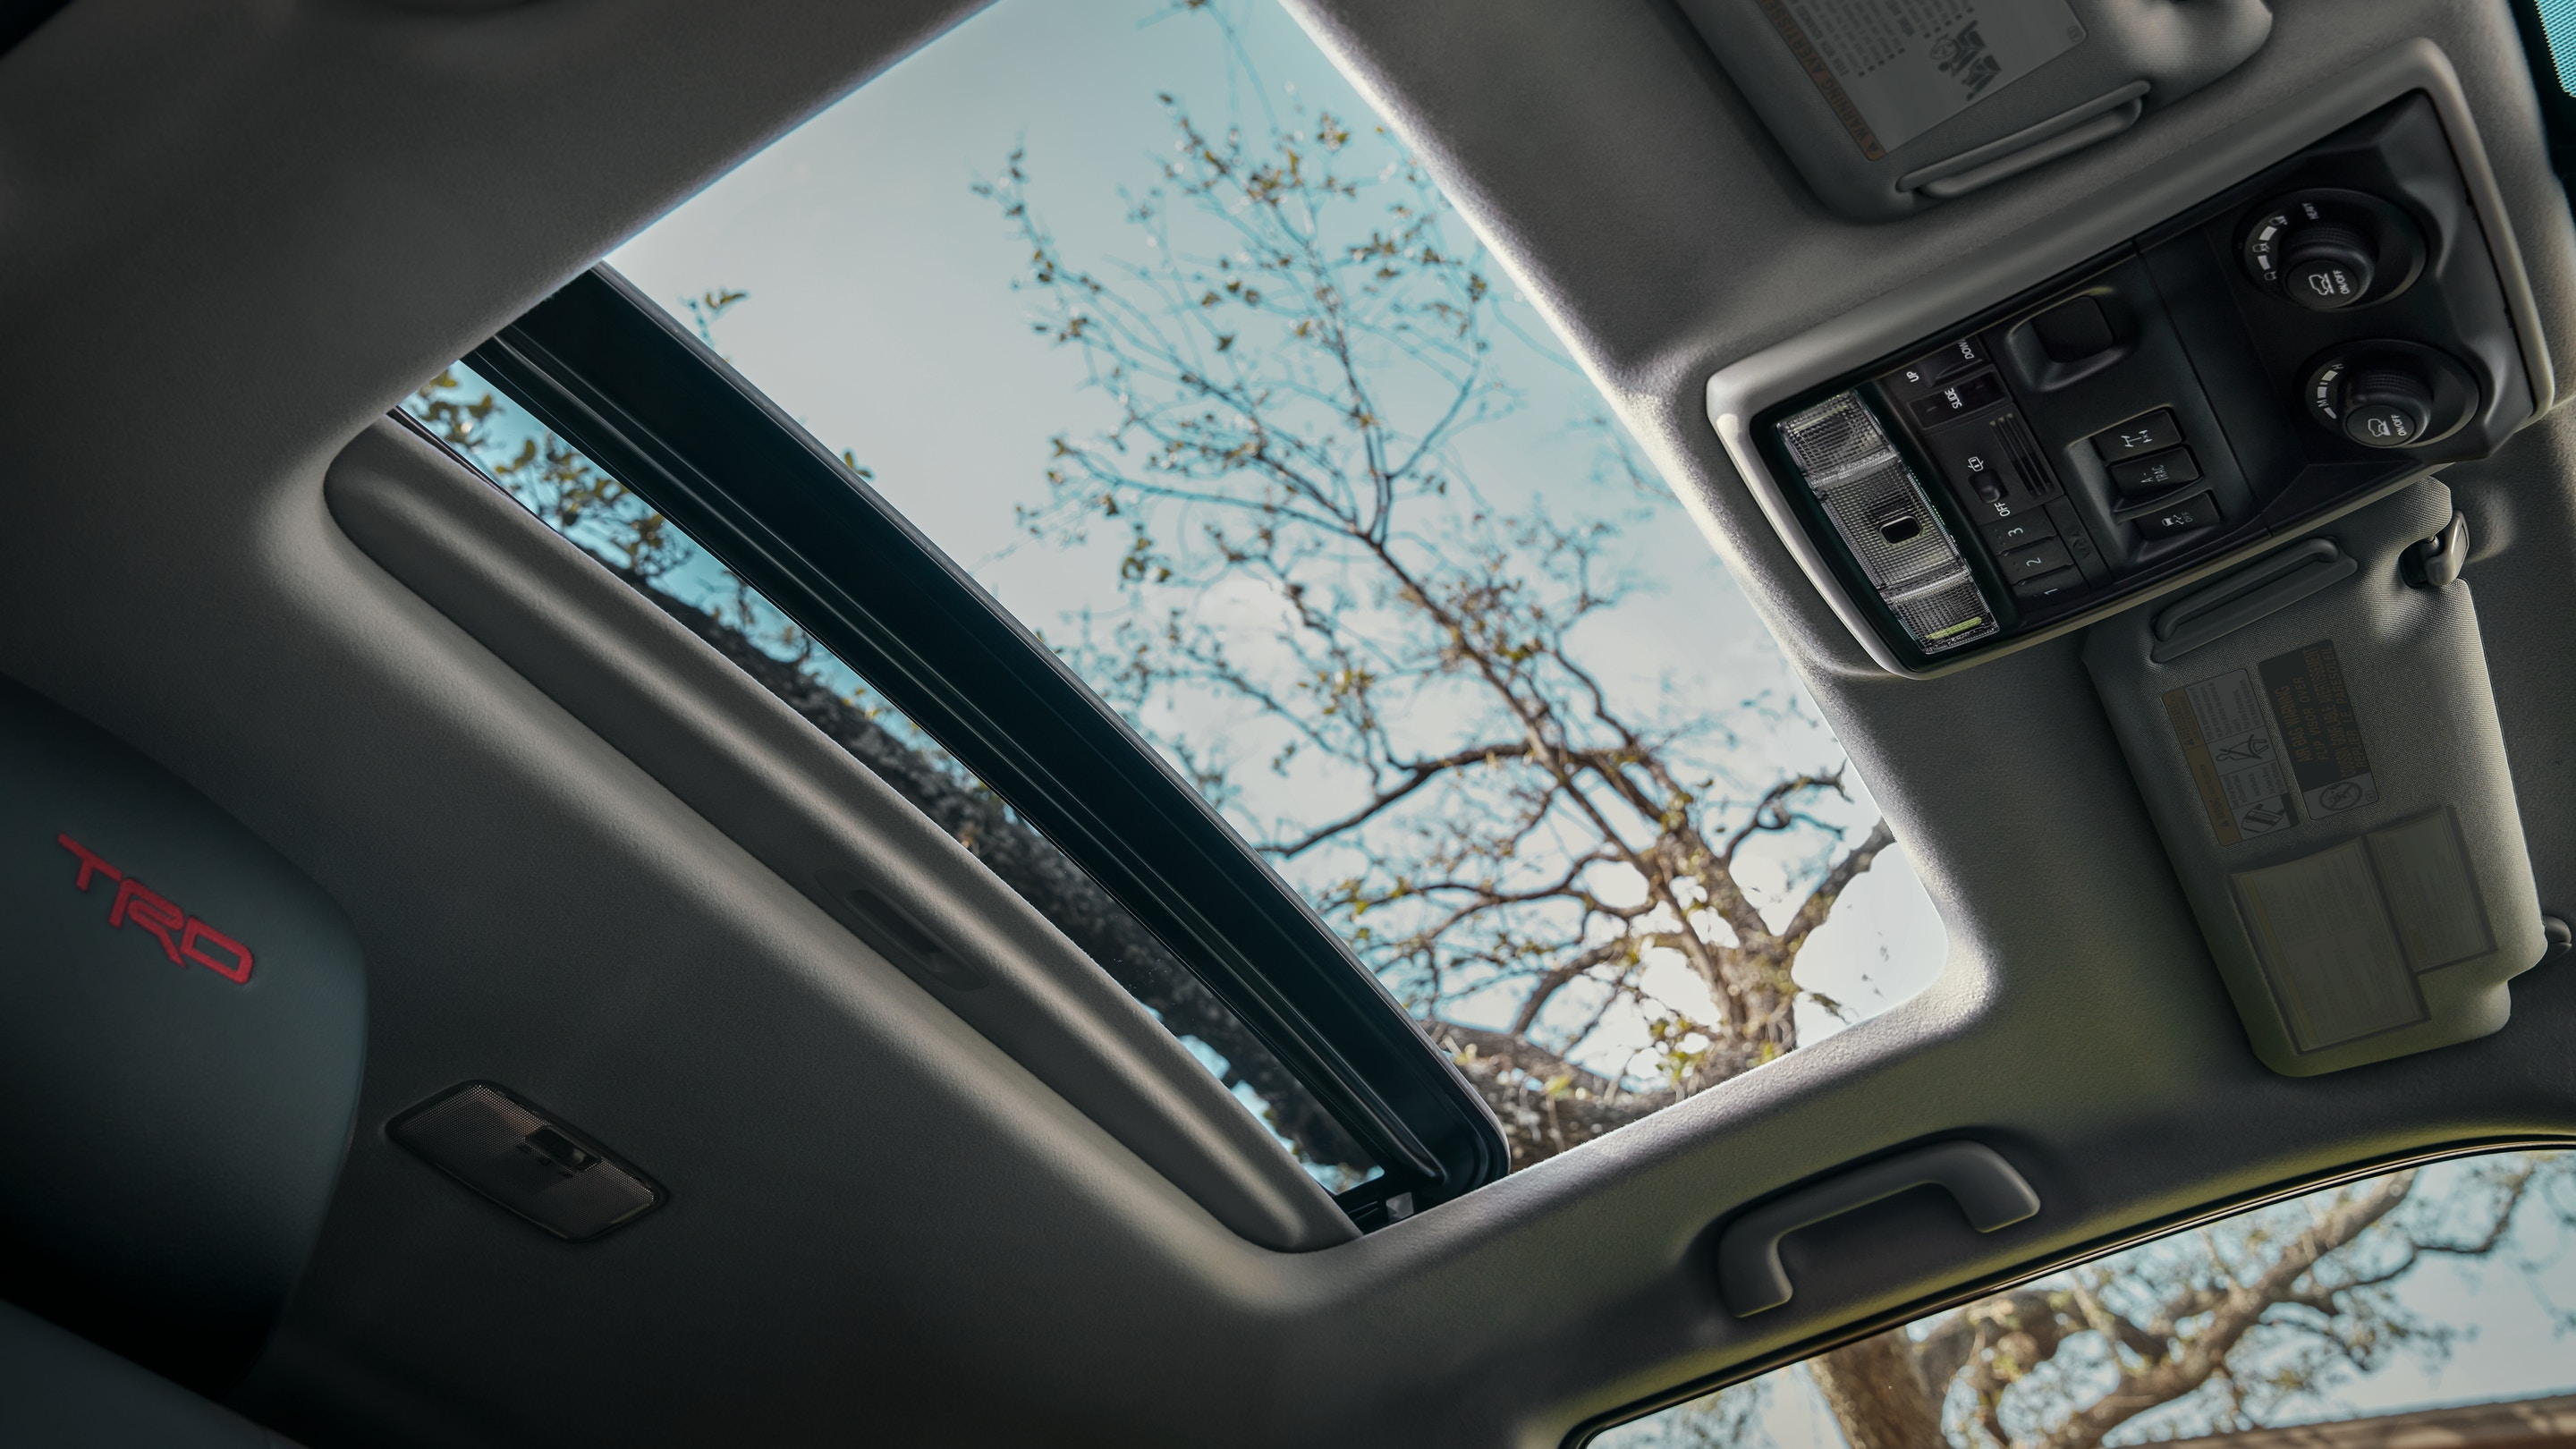 Sunroof in the 2020 4Runner